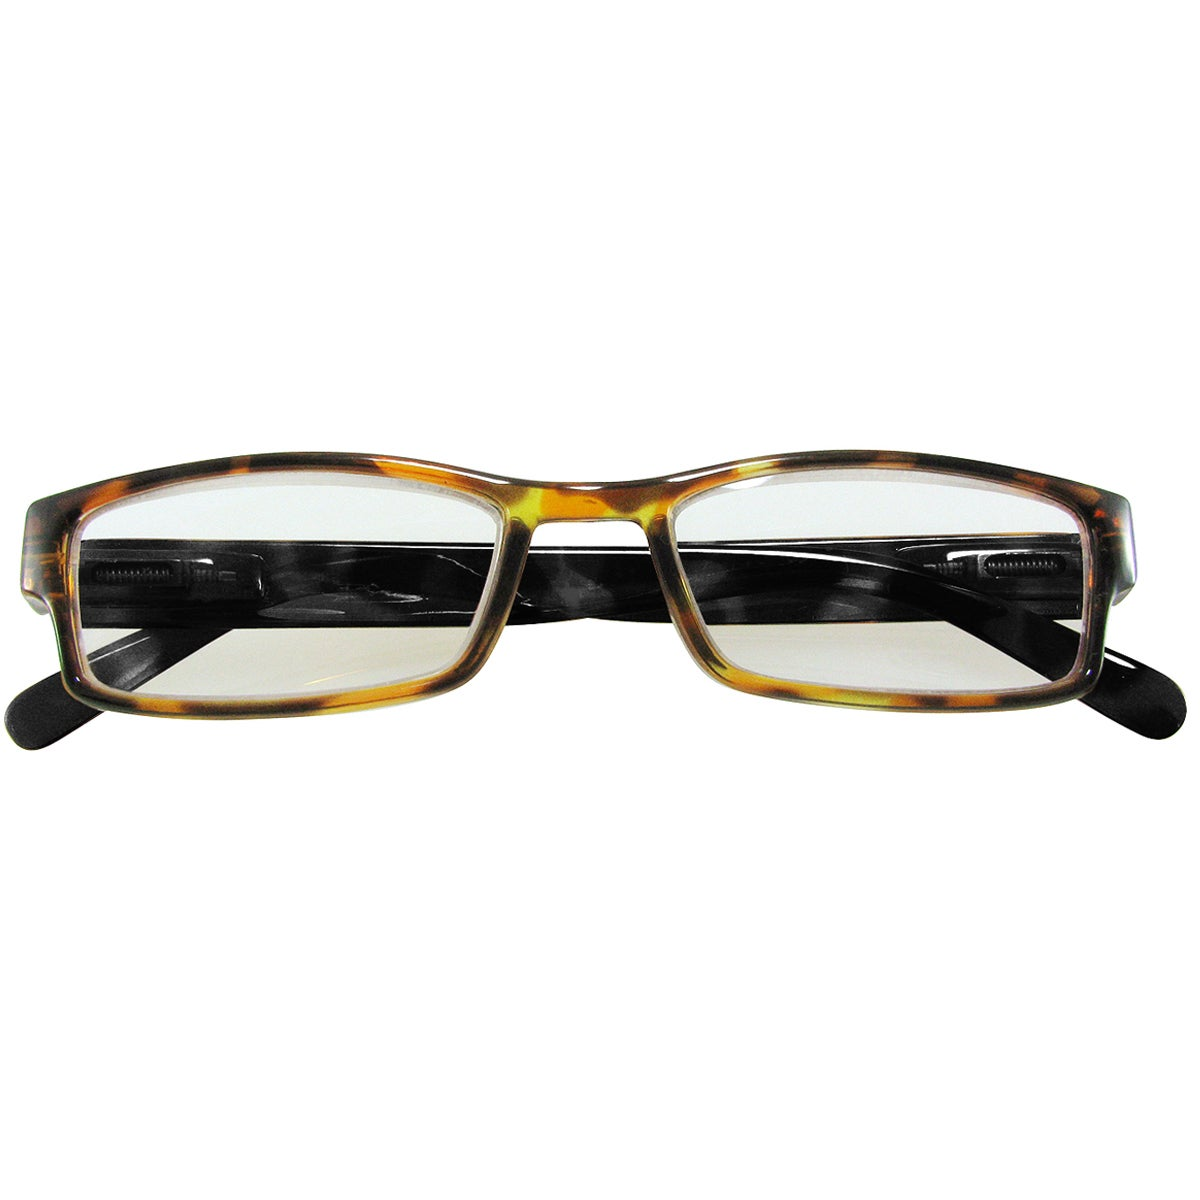 E-specs by Evolutioneyes Tortoise/ black Computer Glasses